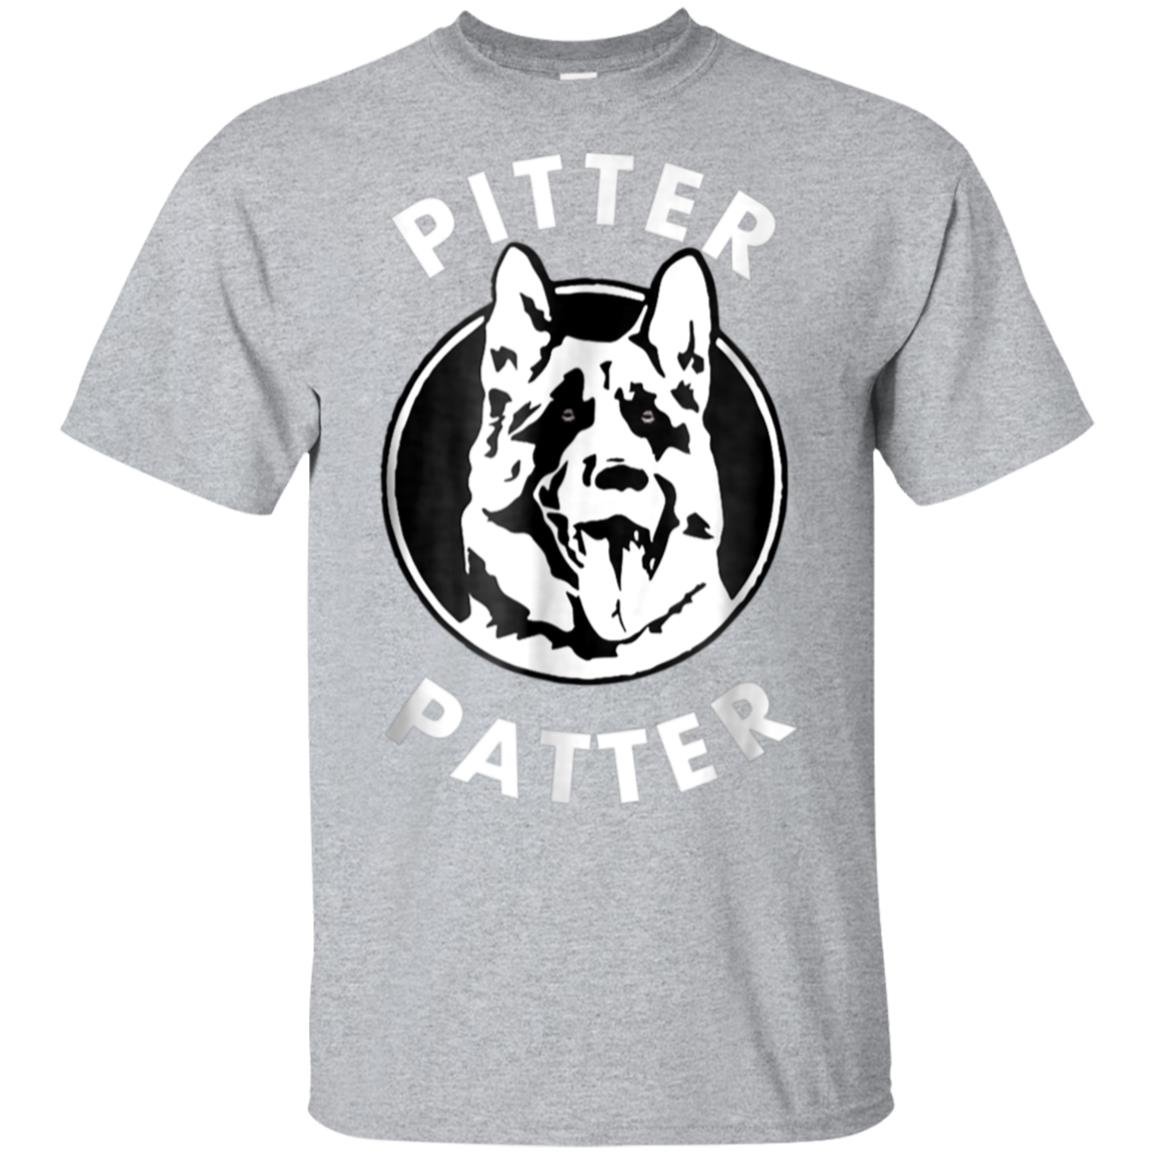 Funny Pitter-Patter Arch logo For Men and Women TShirt 99promocode